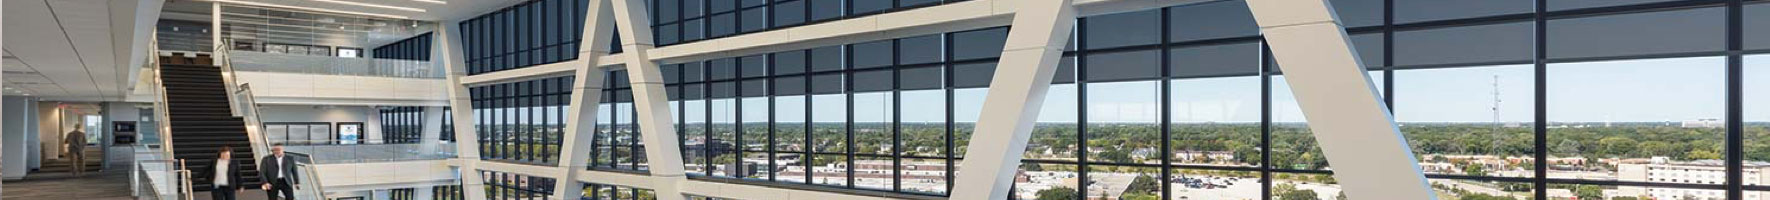 Office windows controlled with Lutron Contract Roller Shades